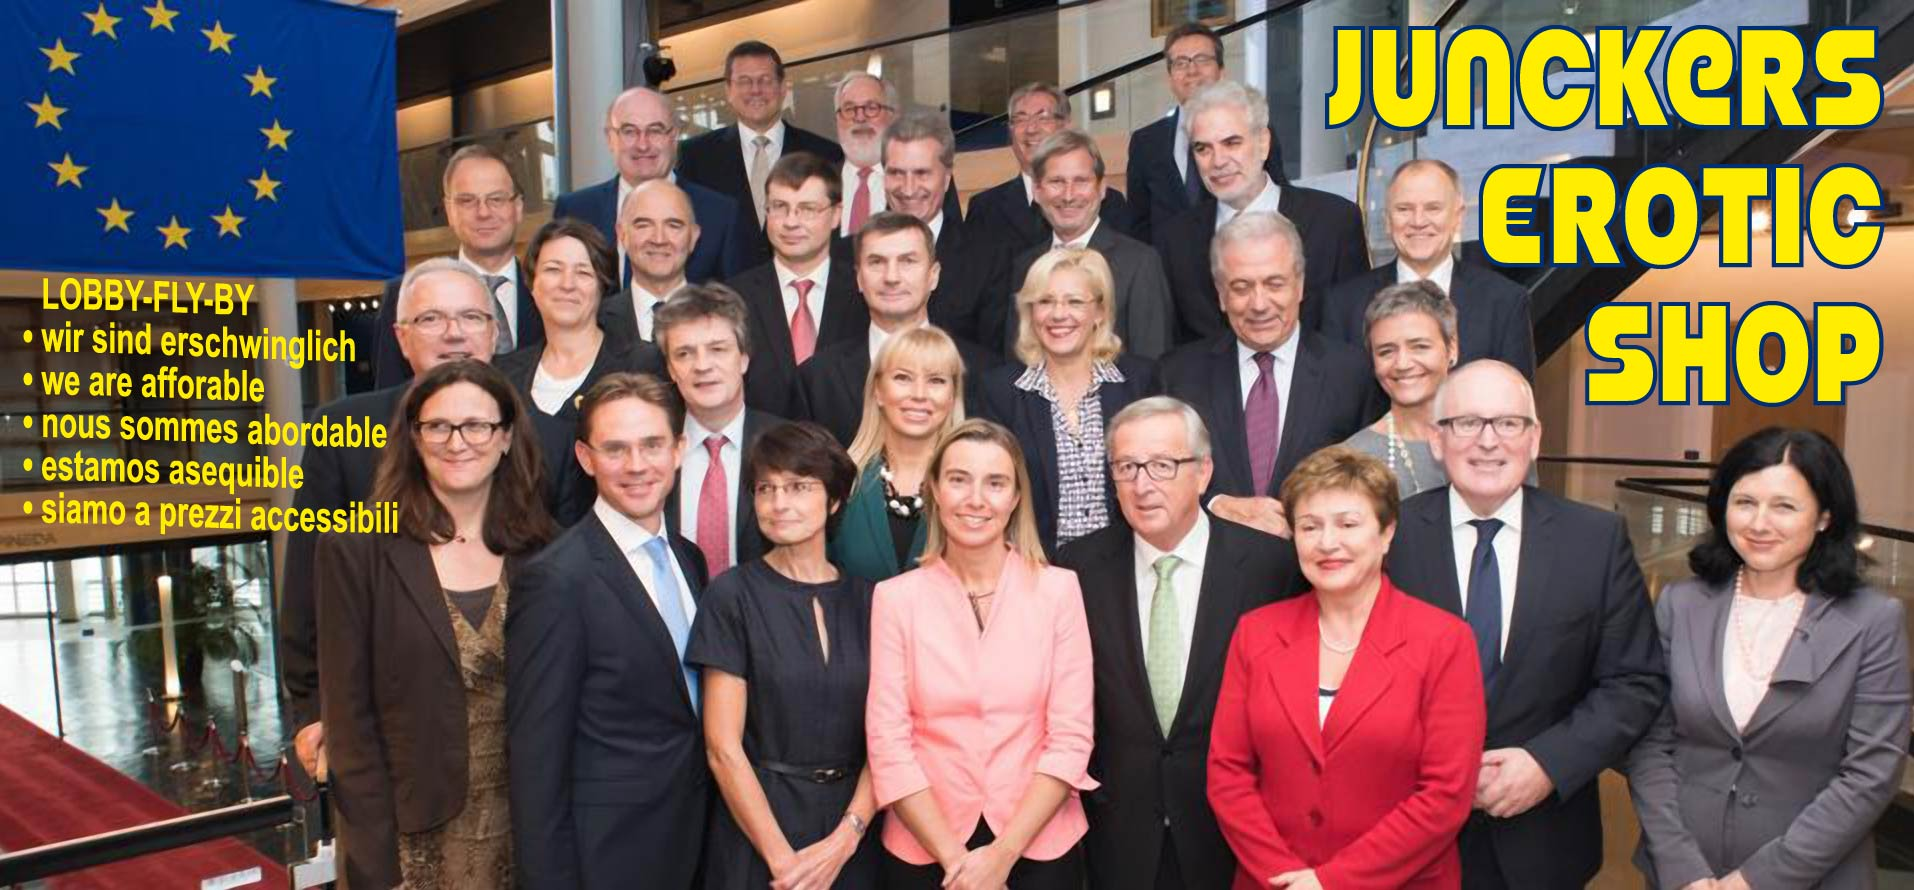 Jean-Claude Juncker EU Kommission family shot Bruessel shopping erschwinglich erfordable europa eurotic shop qpress